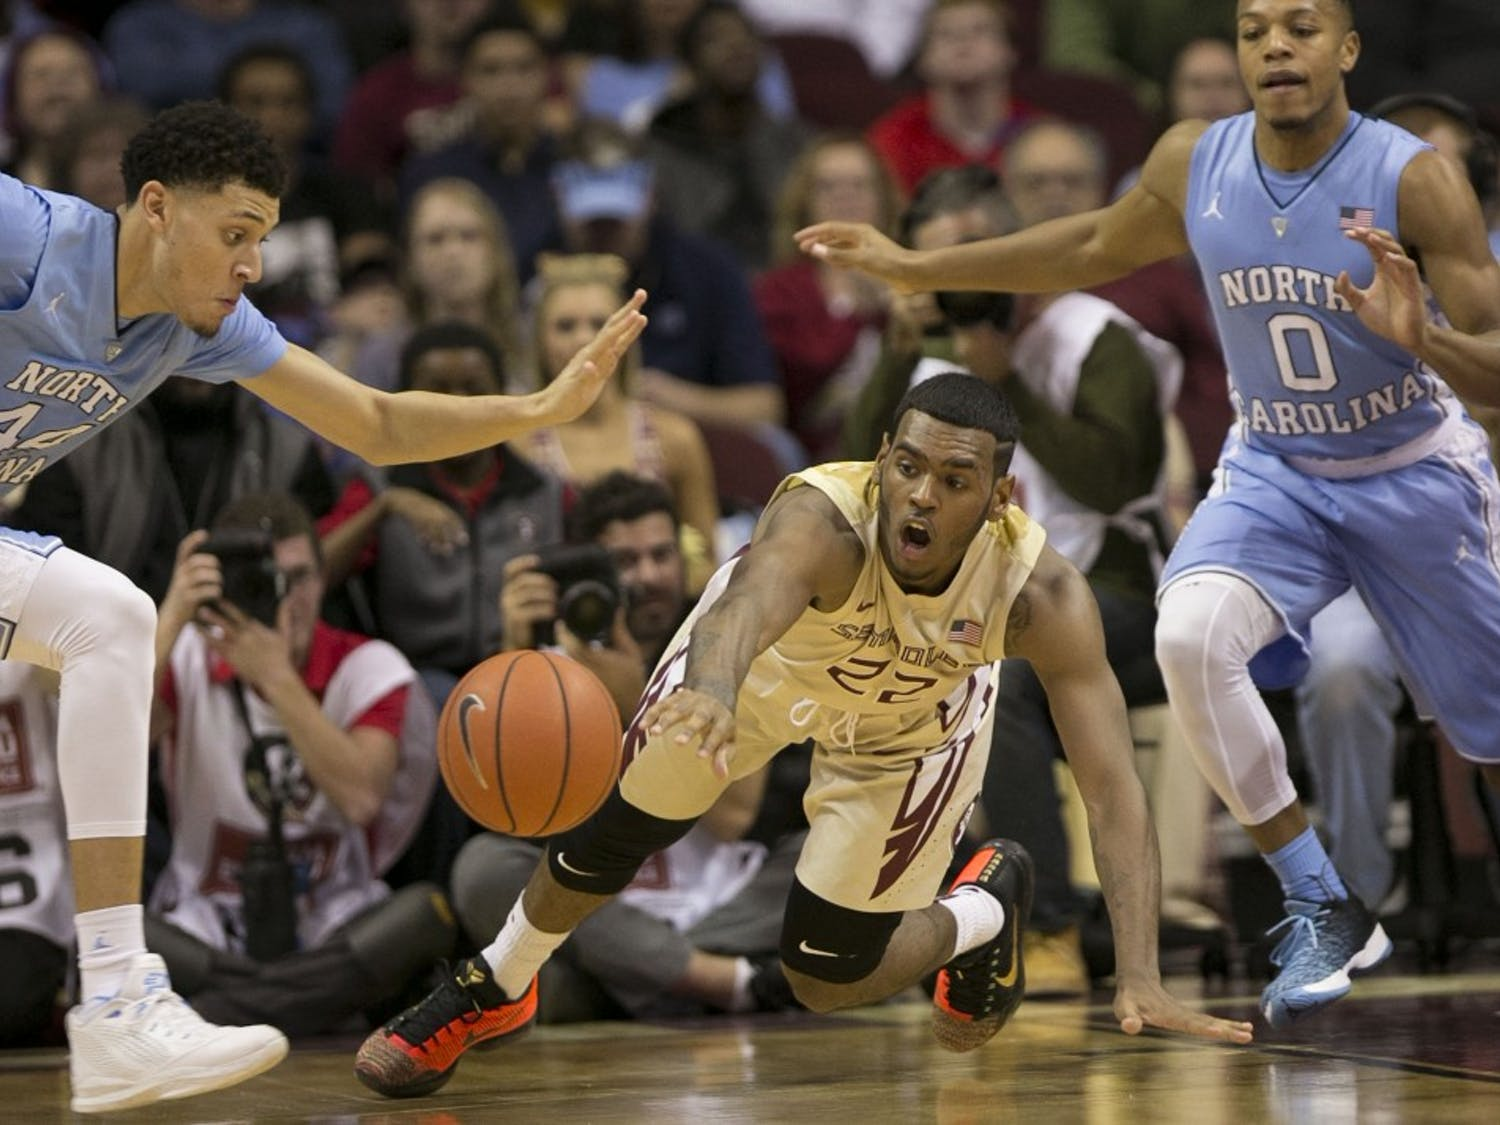 Florida State's Xavier Rathan-Mayes (22) loses control of the ball under pressure from North Carolina's Justin Jackson (44) and Nate Britt (0) during the second half on Monday, Jan. 4, 2016, at the Tucker Center in Tallahassee, Fla. (Robert Willett/Raleigh News & Observer/TNS)